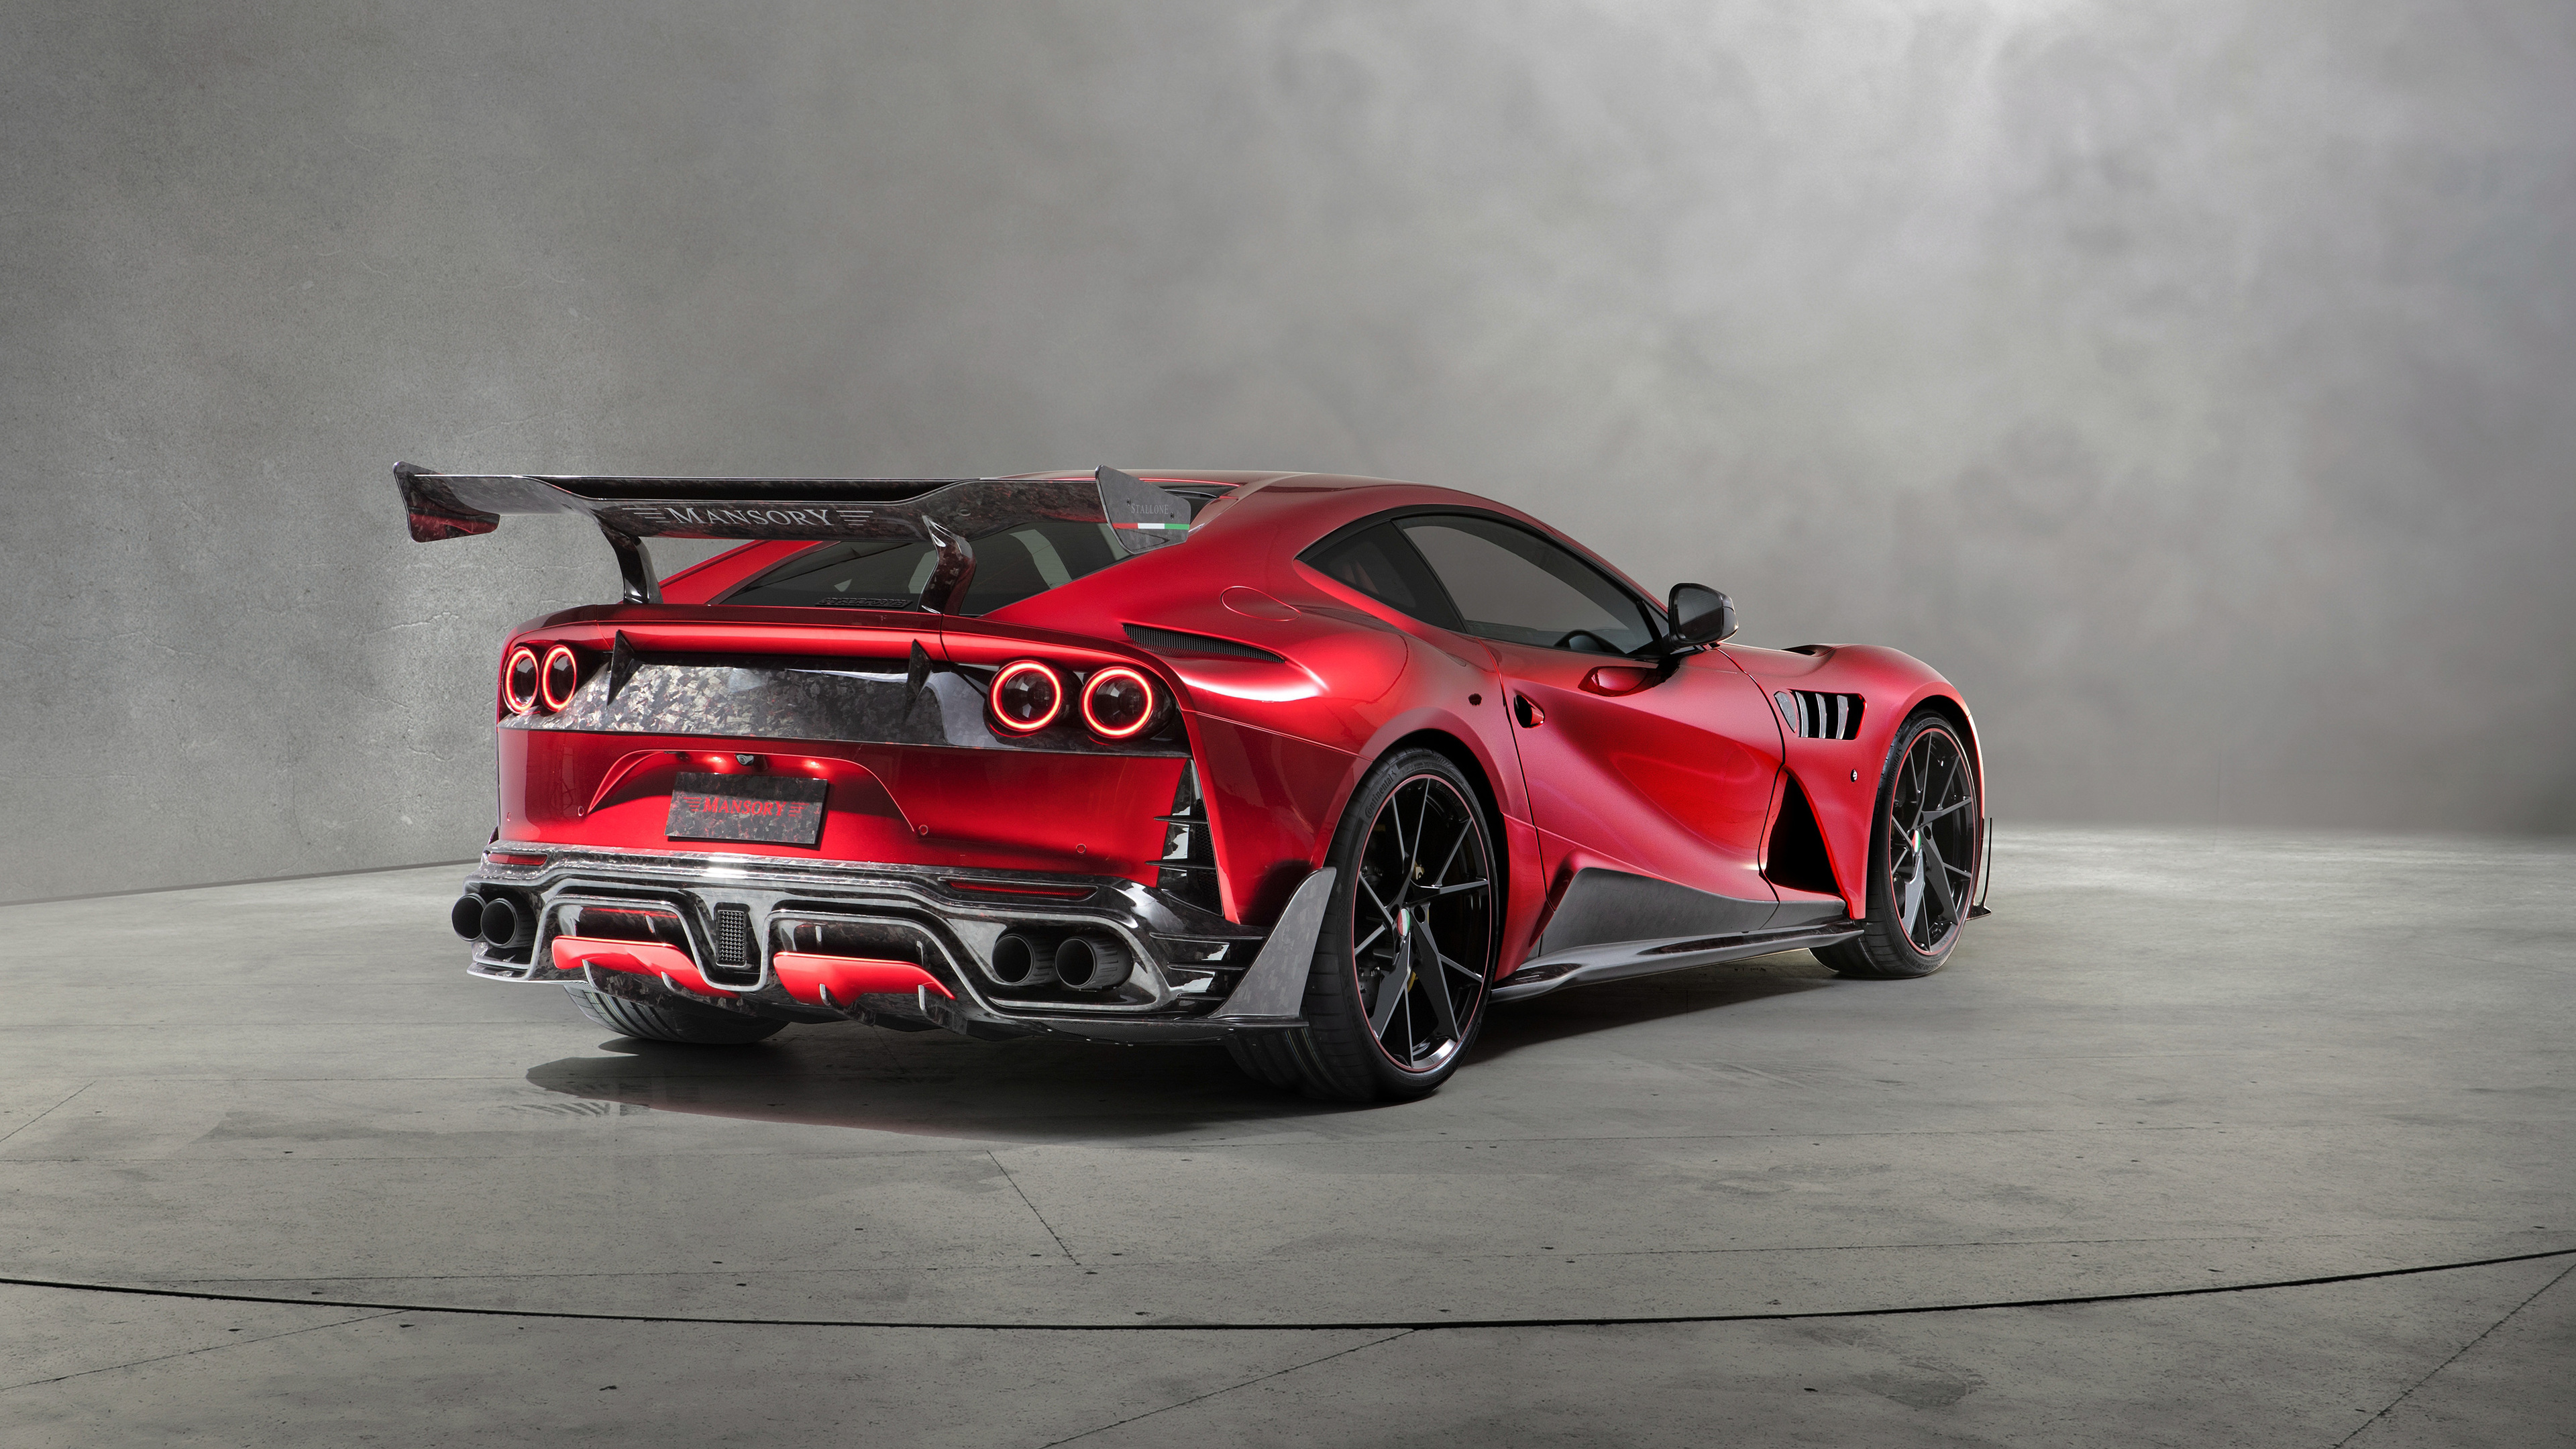 mansory stallone 2018 rear view 1539110114 - Mansory Stallone 2018 Rear View - mansory wallpapers, mansory stallone wallpapers, hd-wallpapers, cars wallpapers, 4k-wallpapers, 2018 cars wallpapers